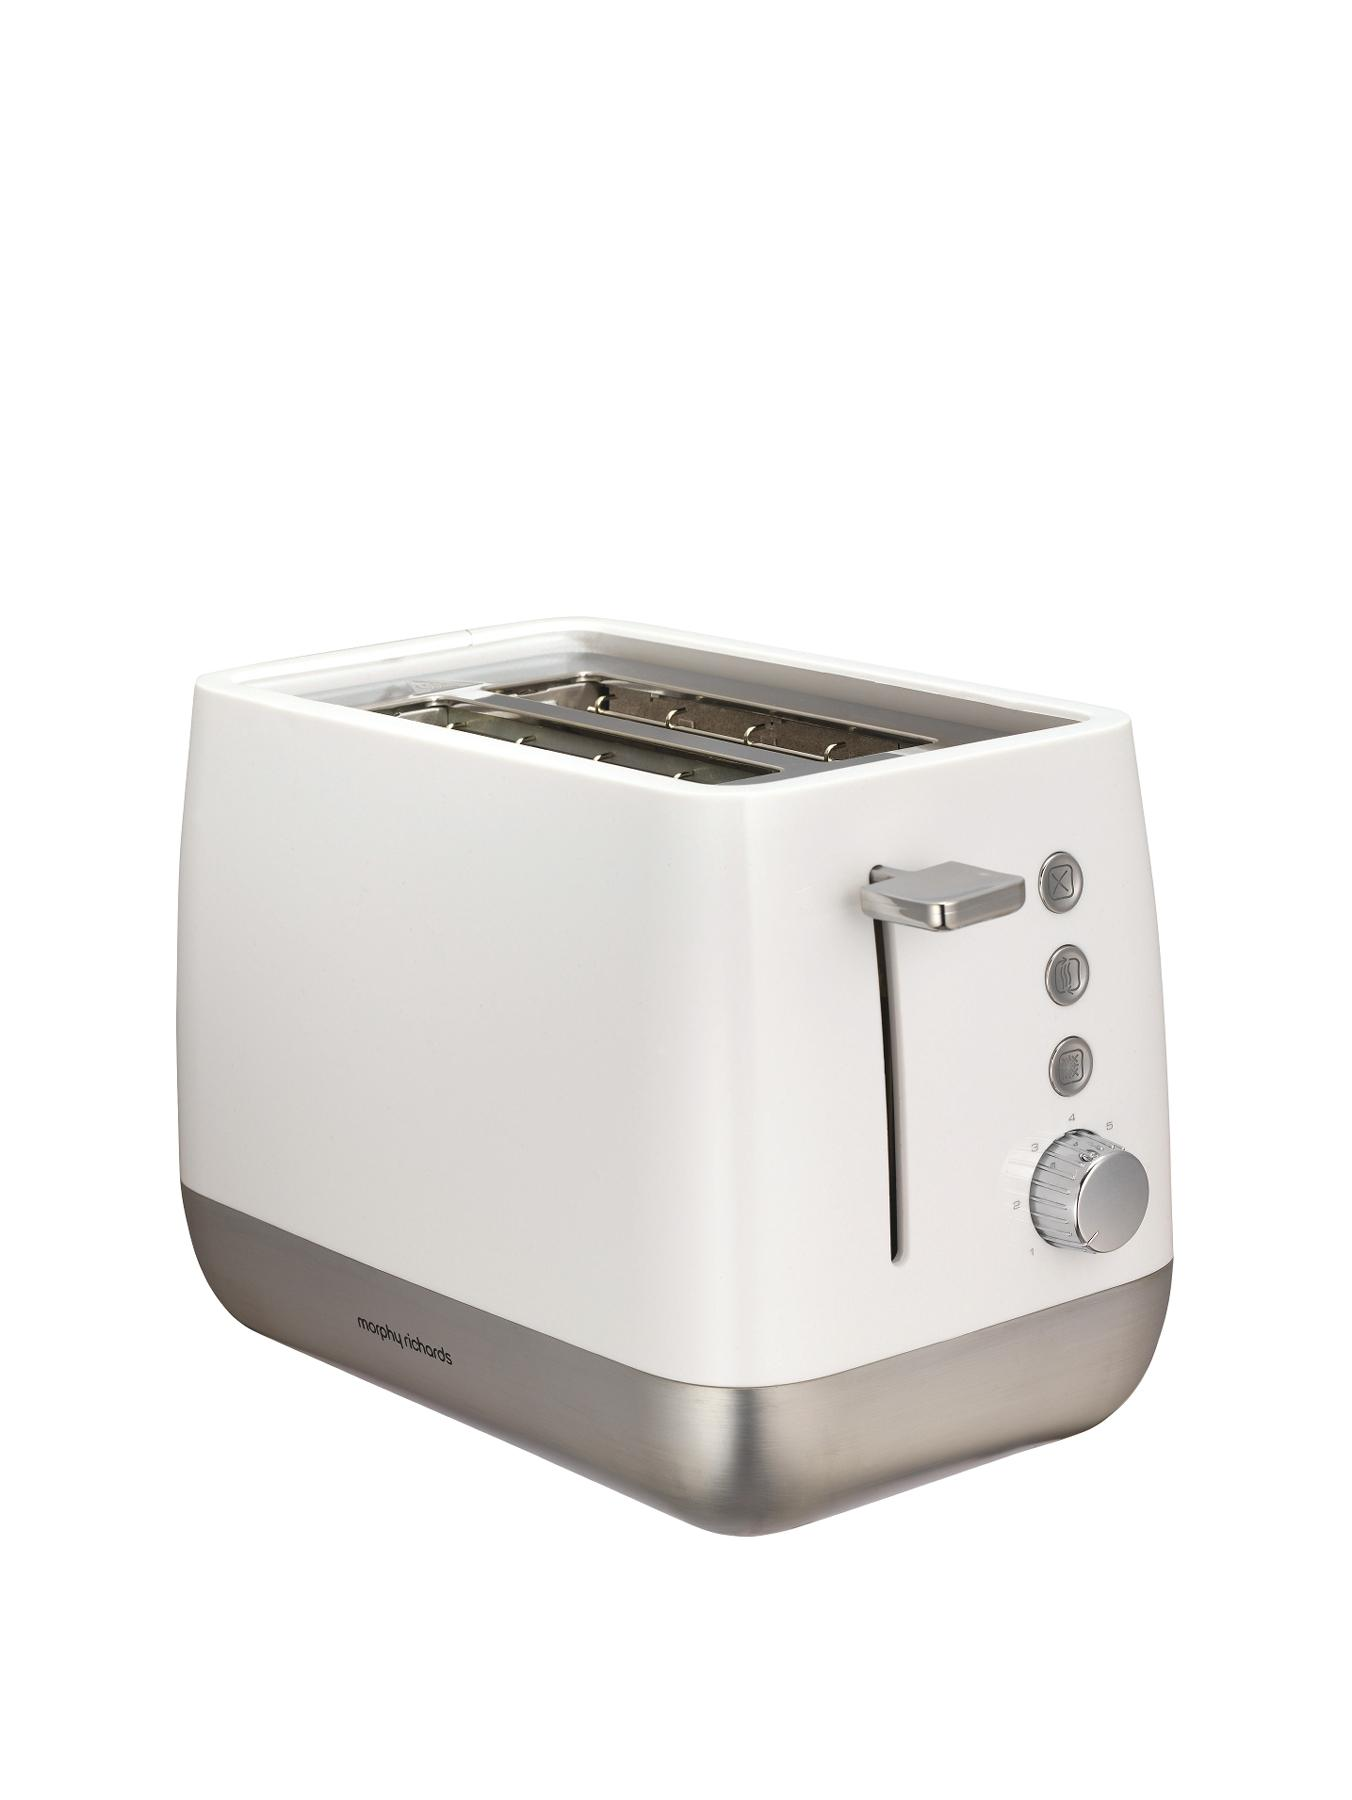 221151 Chroma 1000 Watt 2 Slice Toaster - White